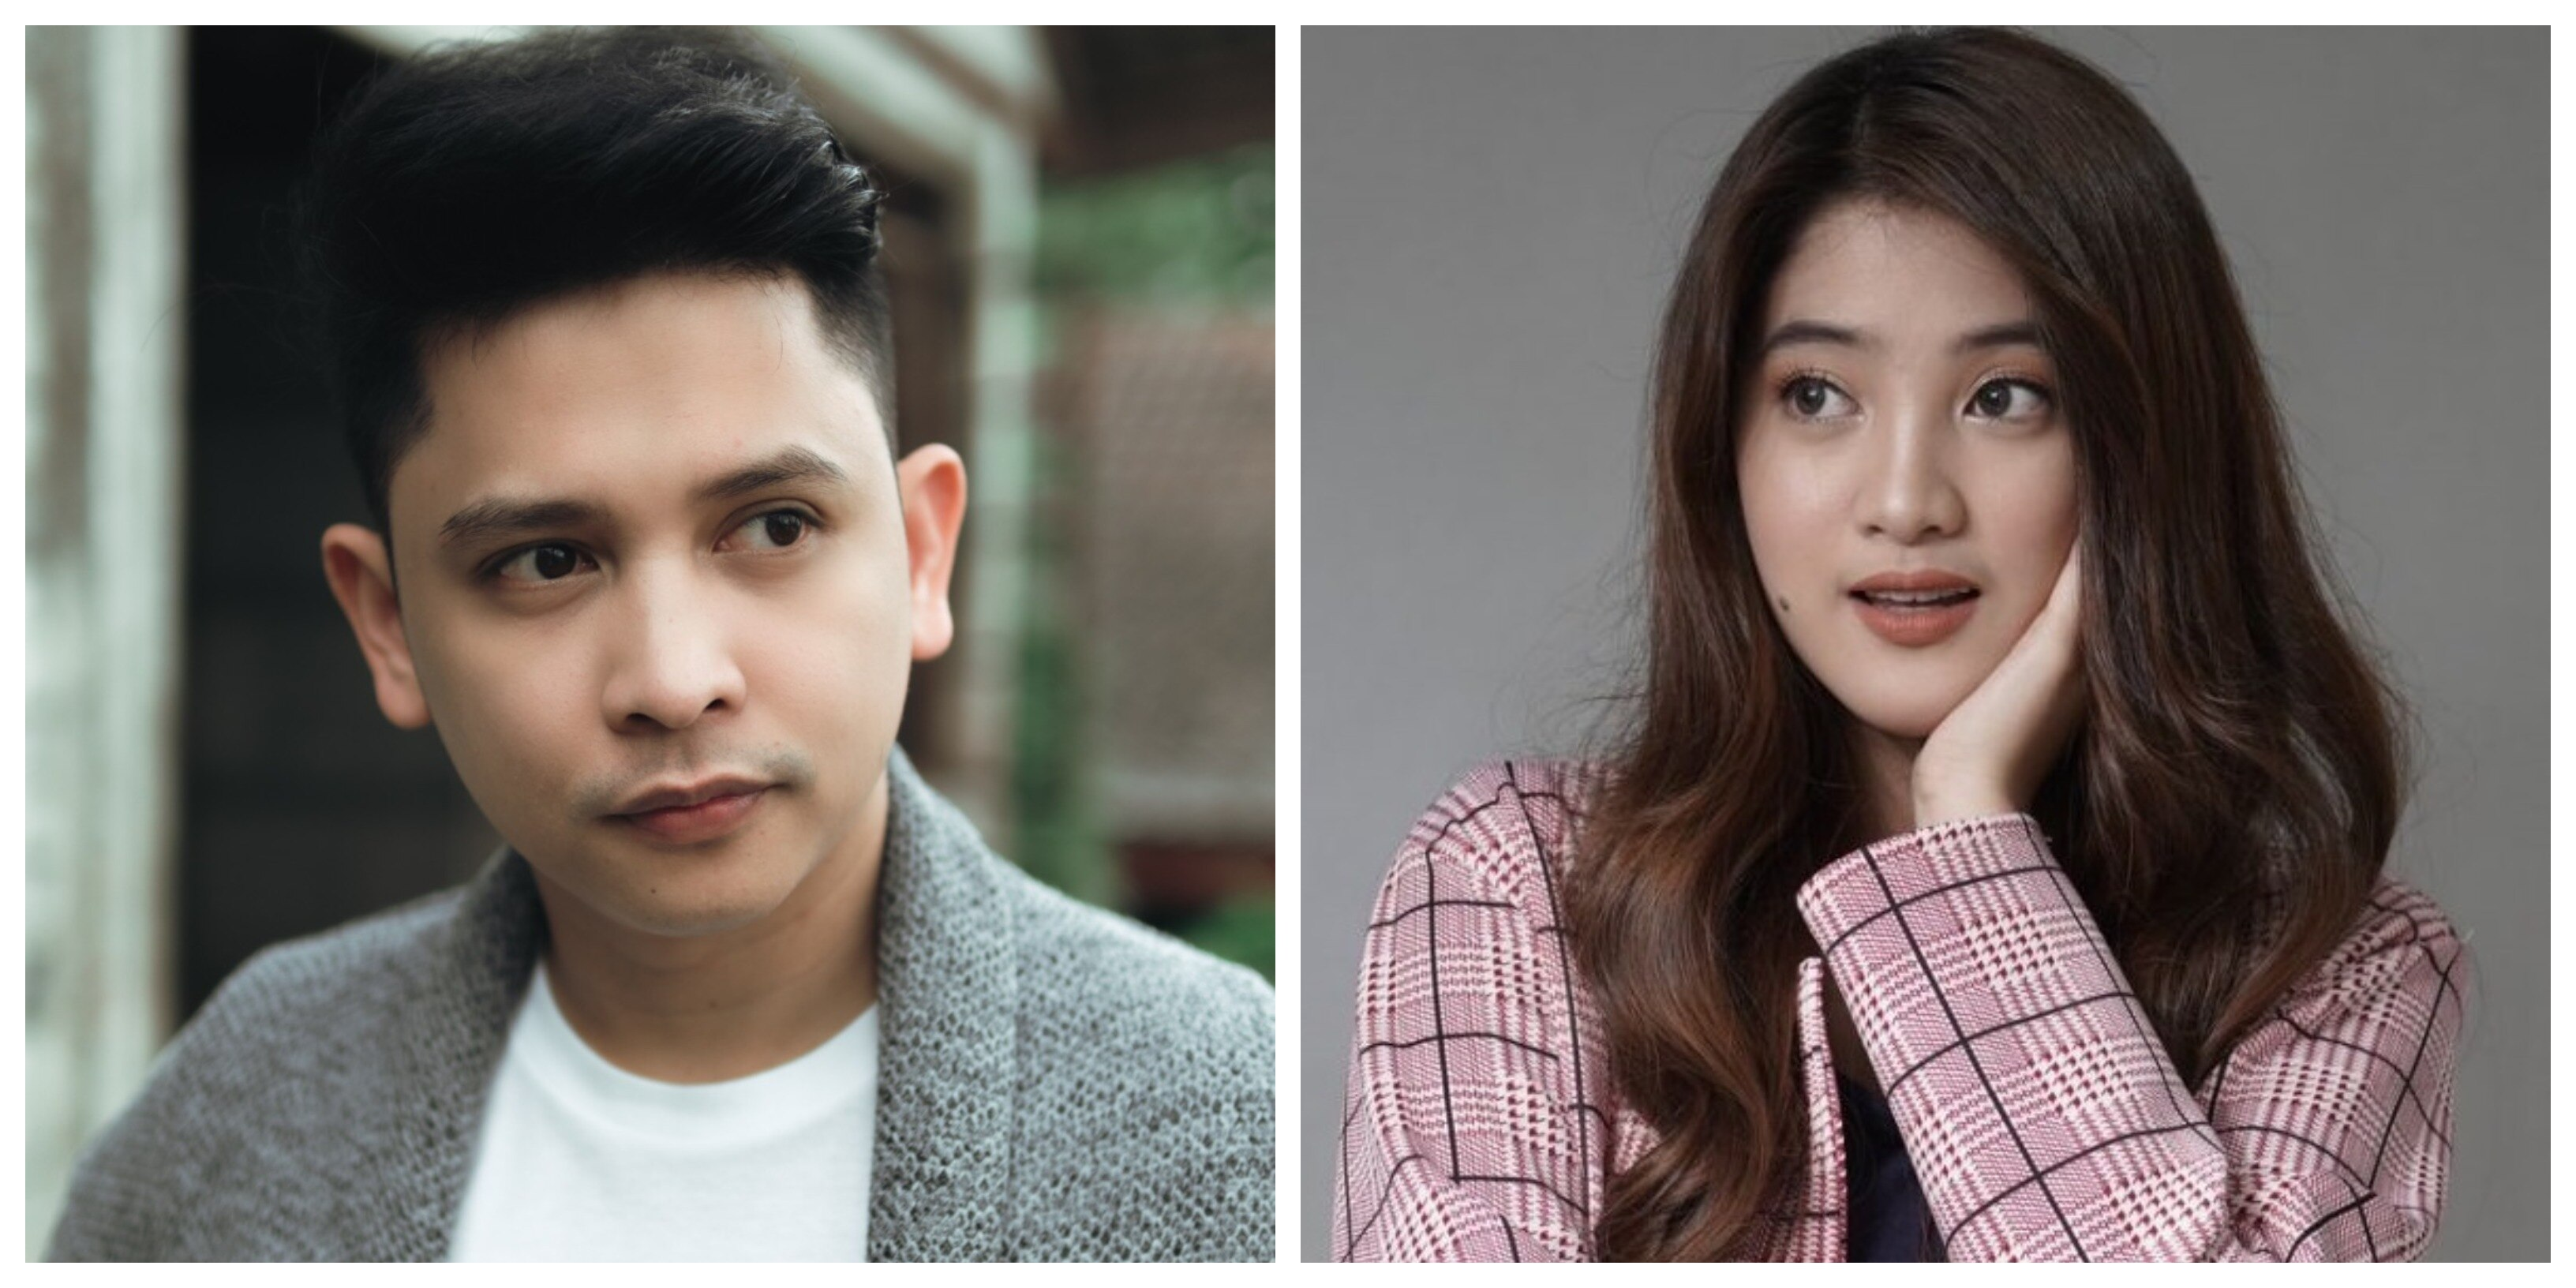 ABS-CBN's Old School Records to drop debut singles of Chloe, RJZON